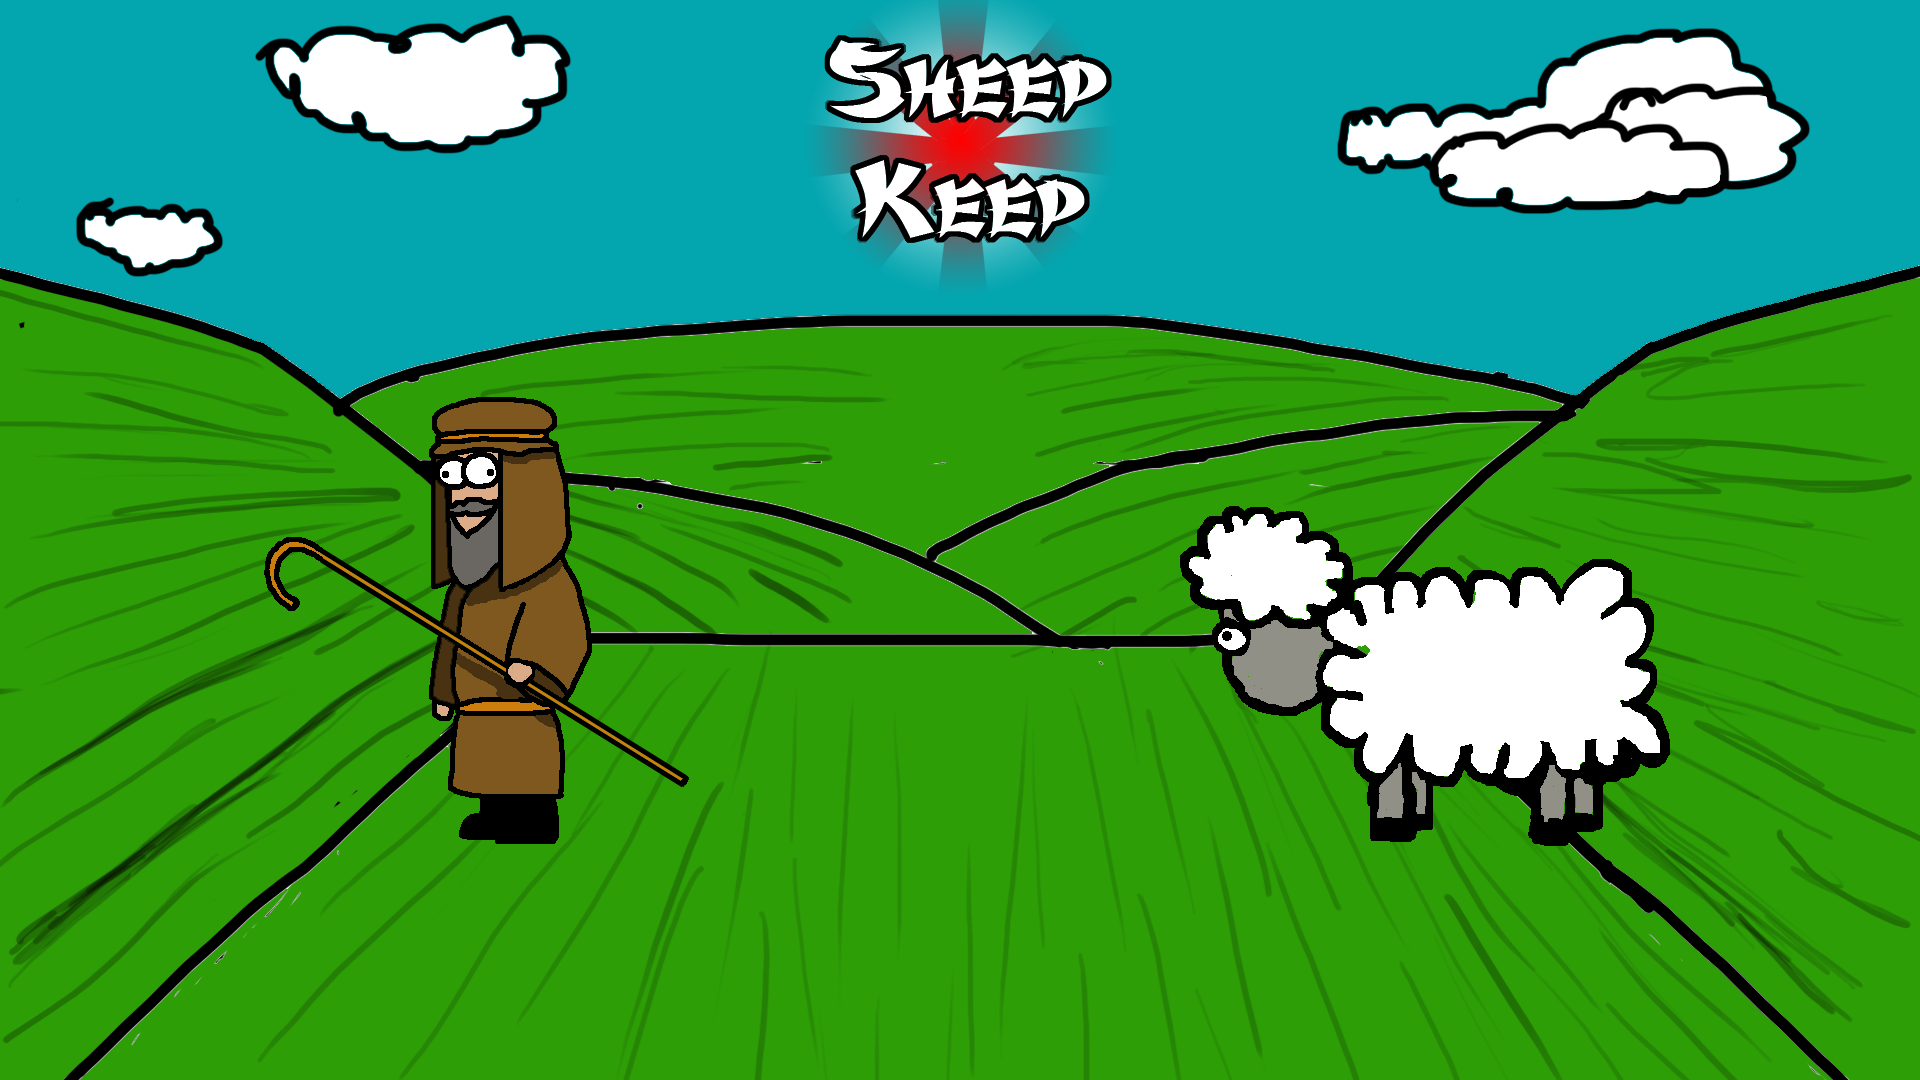 Sheep Keep